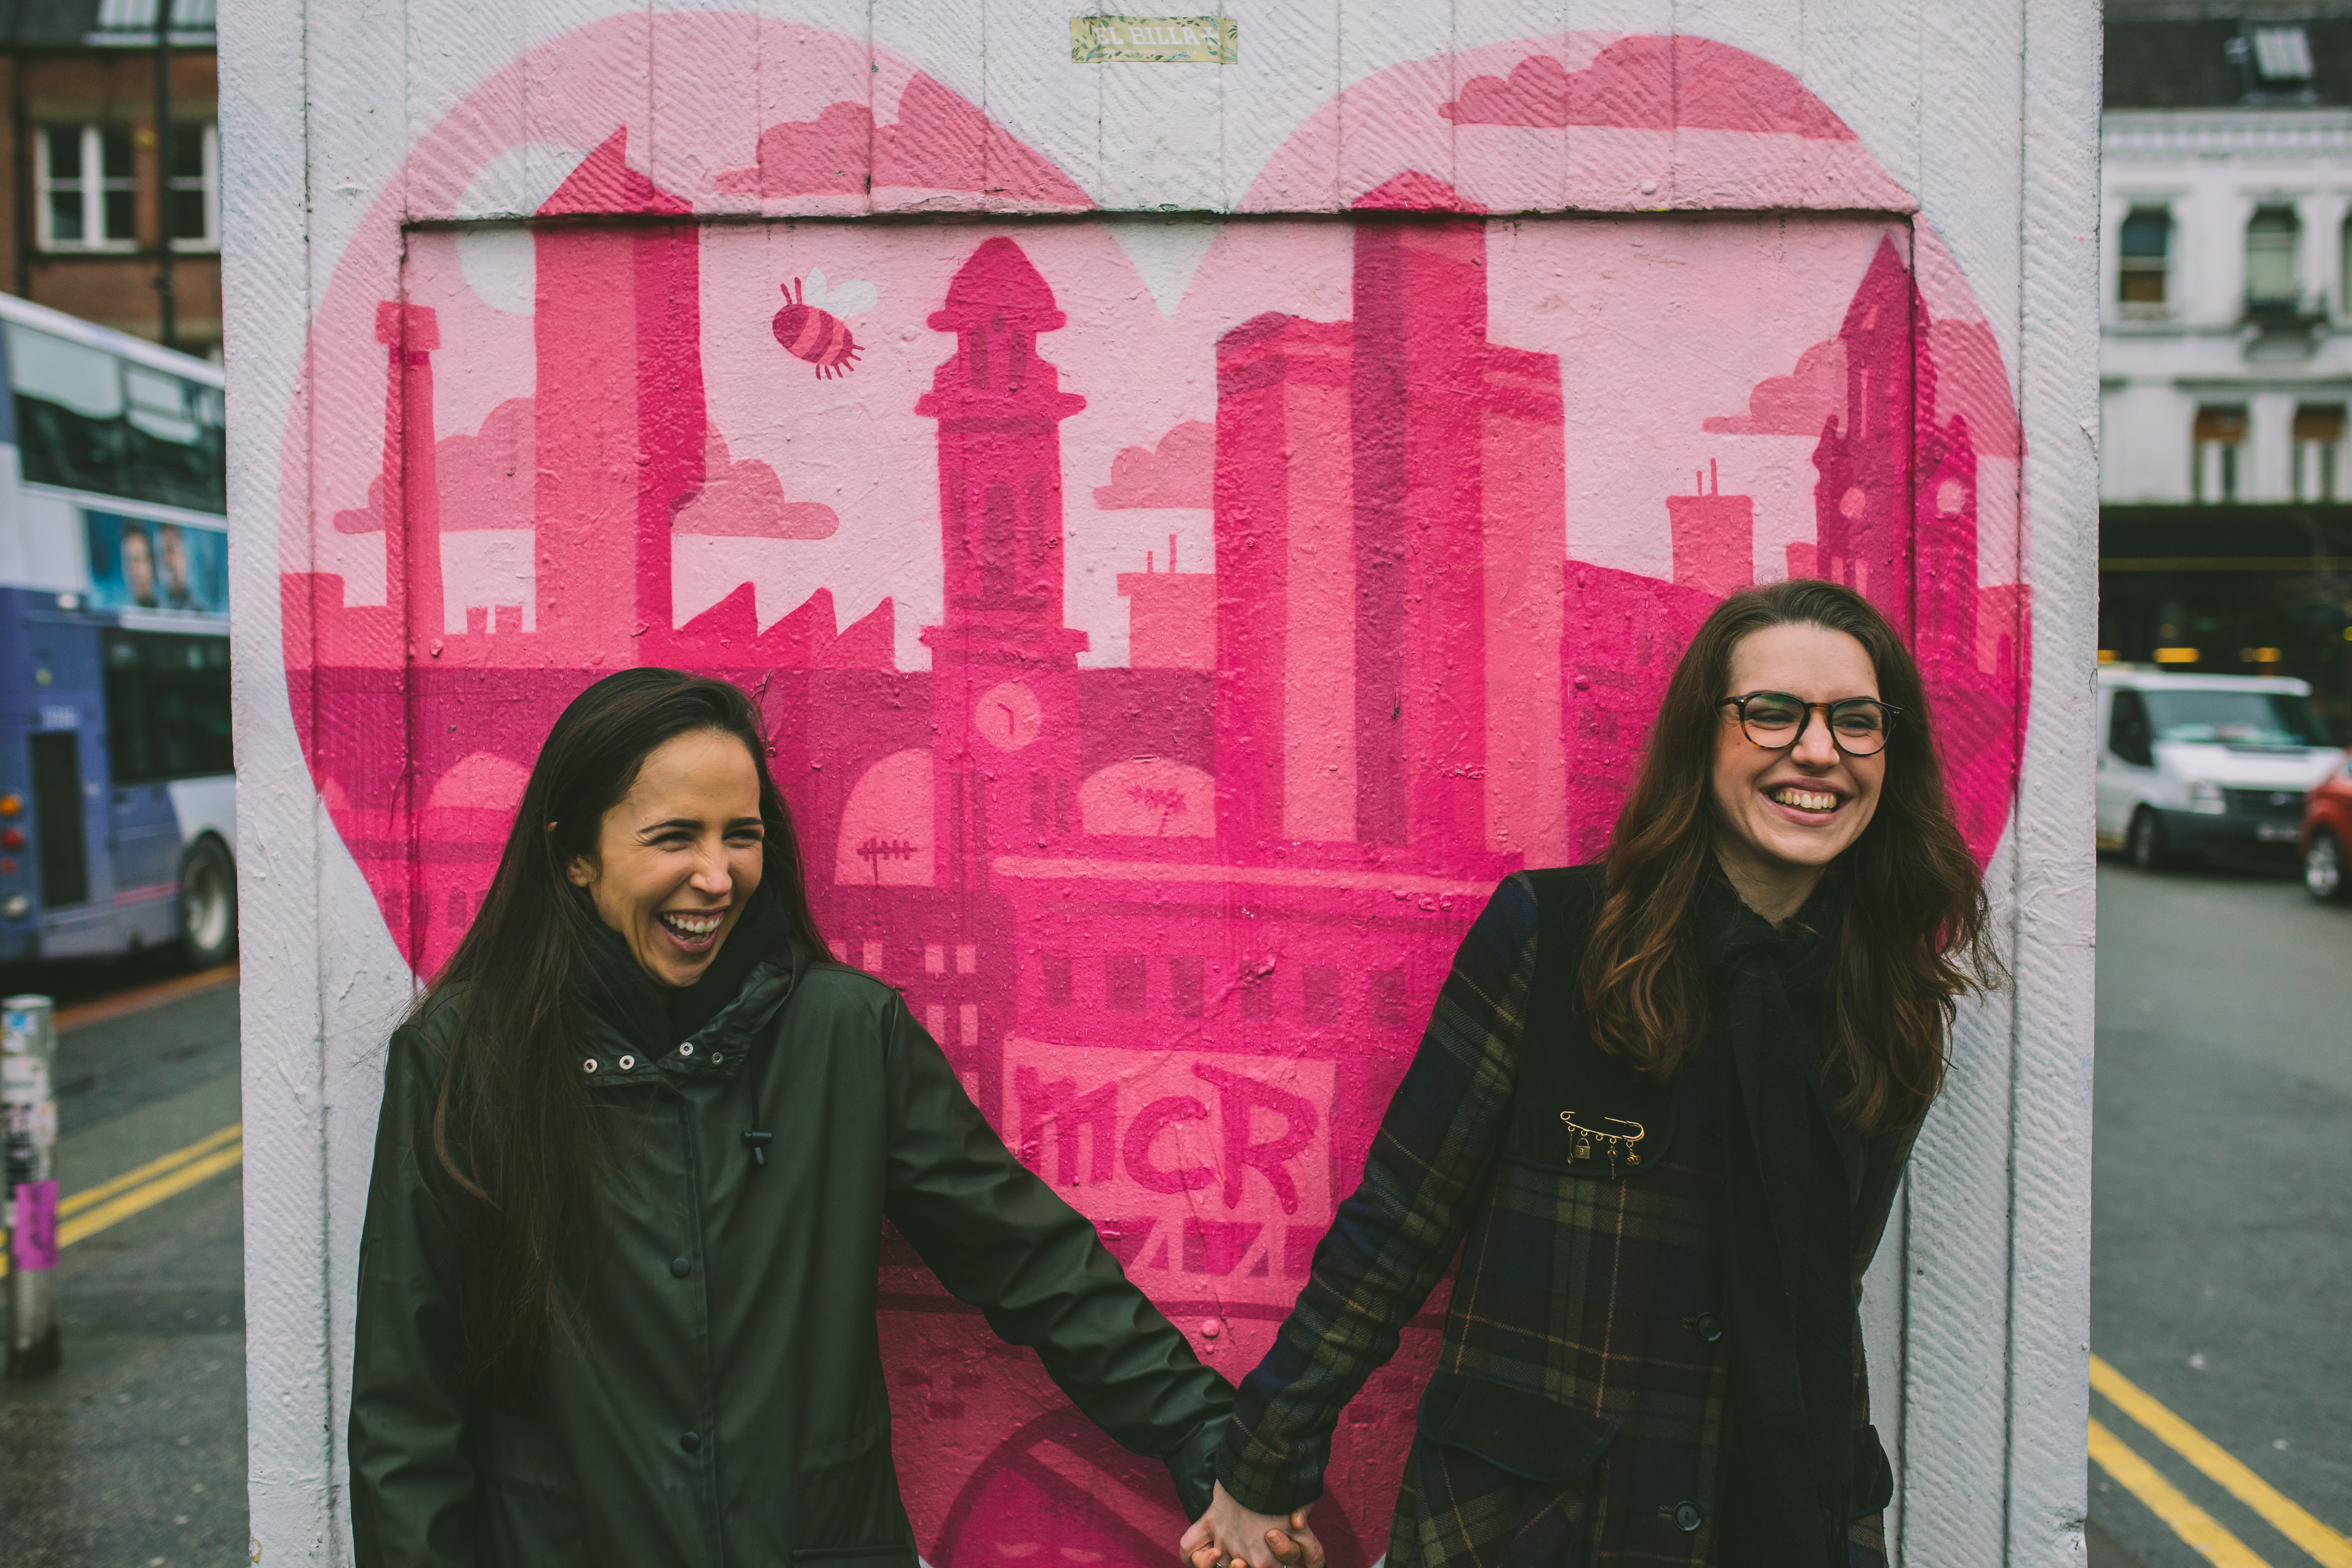 Female couple laugh holding hands in front of Manchester graffiti